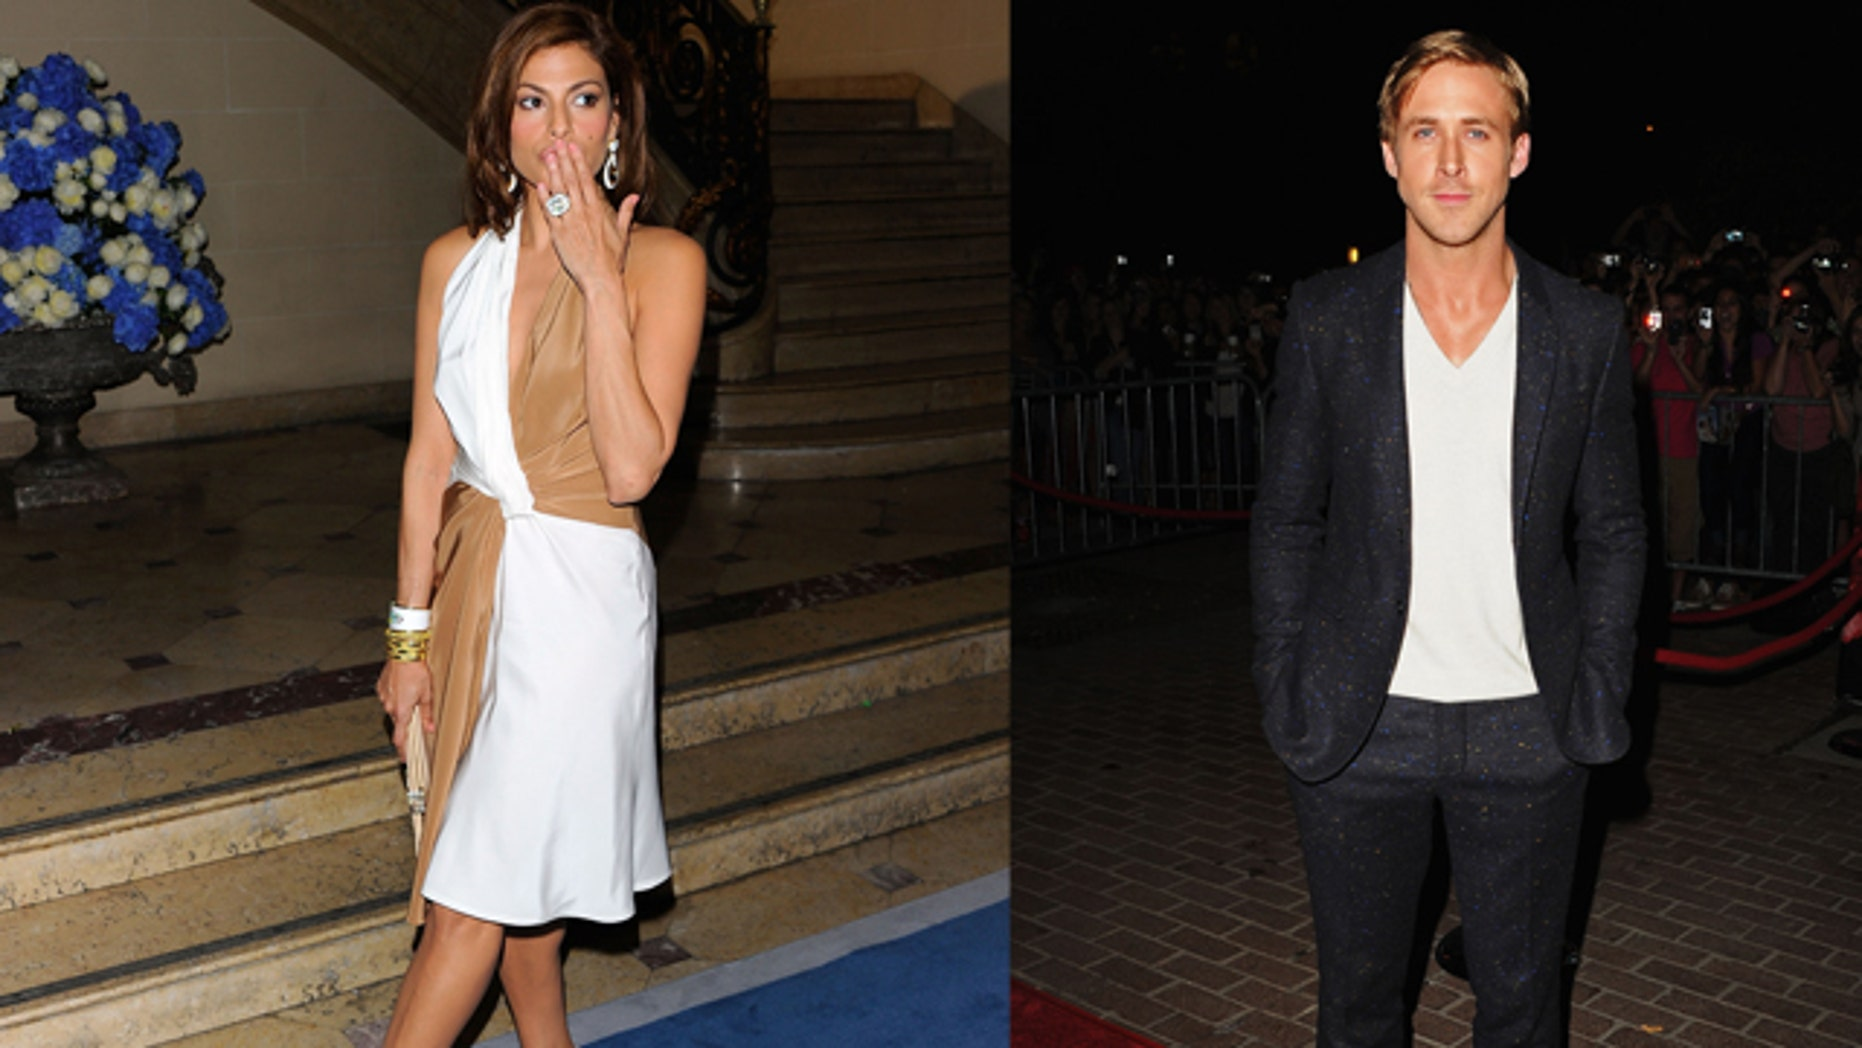 Eva Mendes on the right. Ryan Gosling on the left.